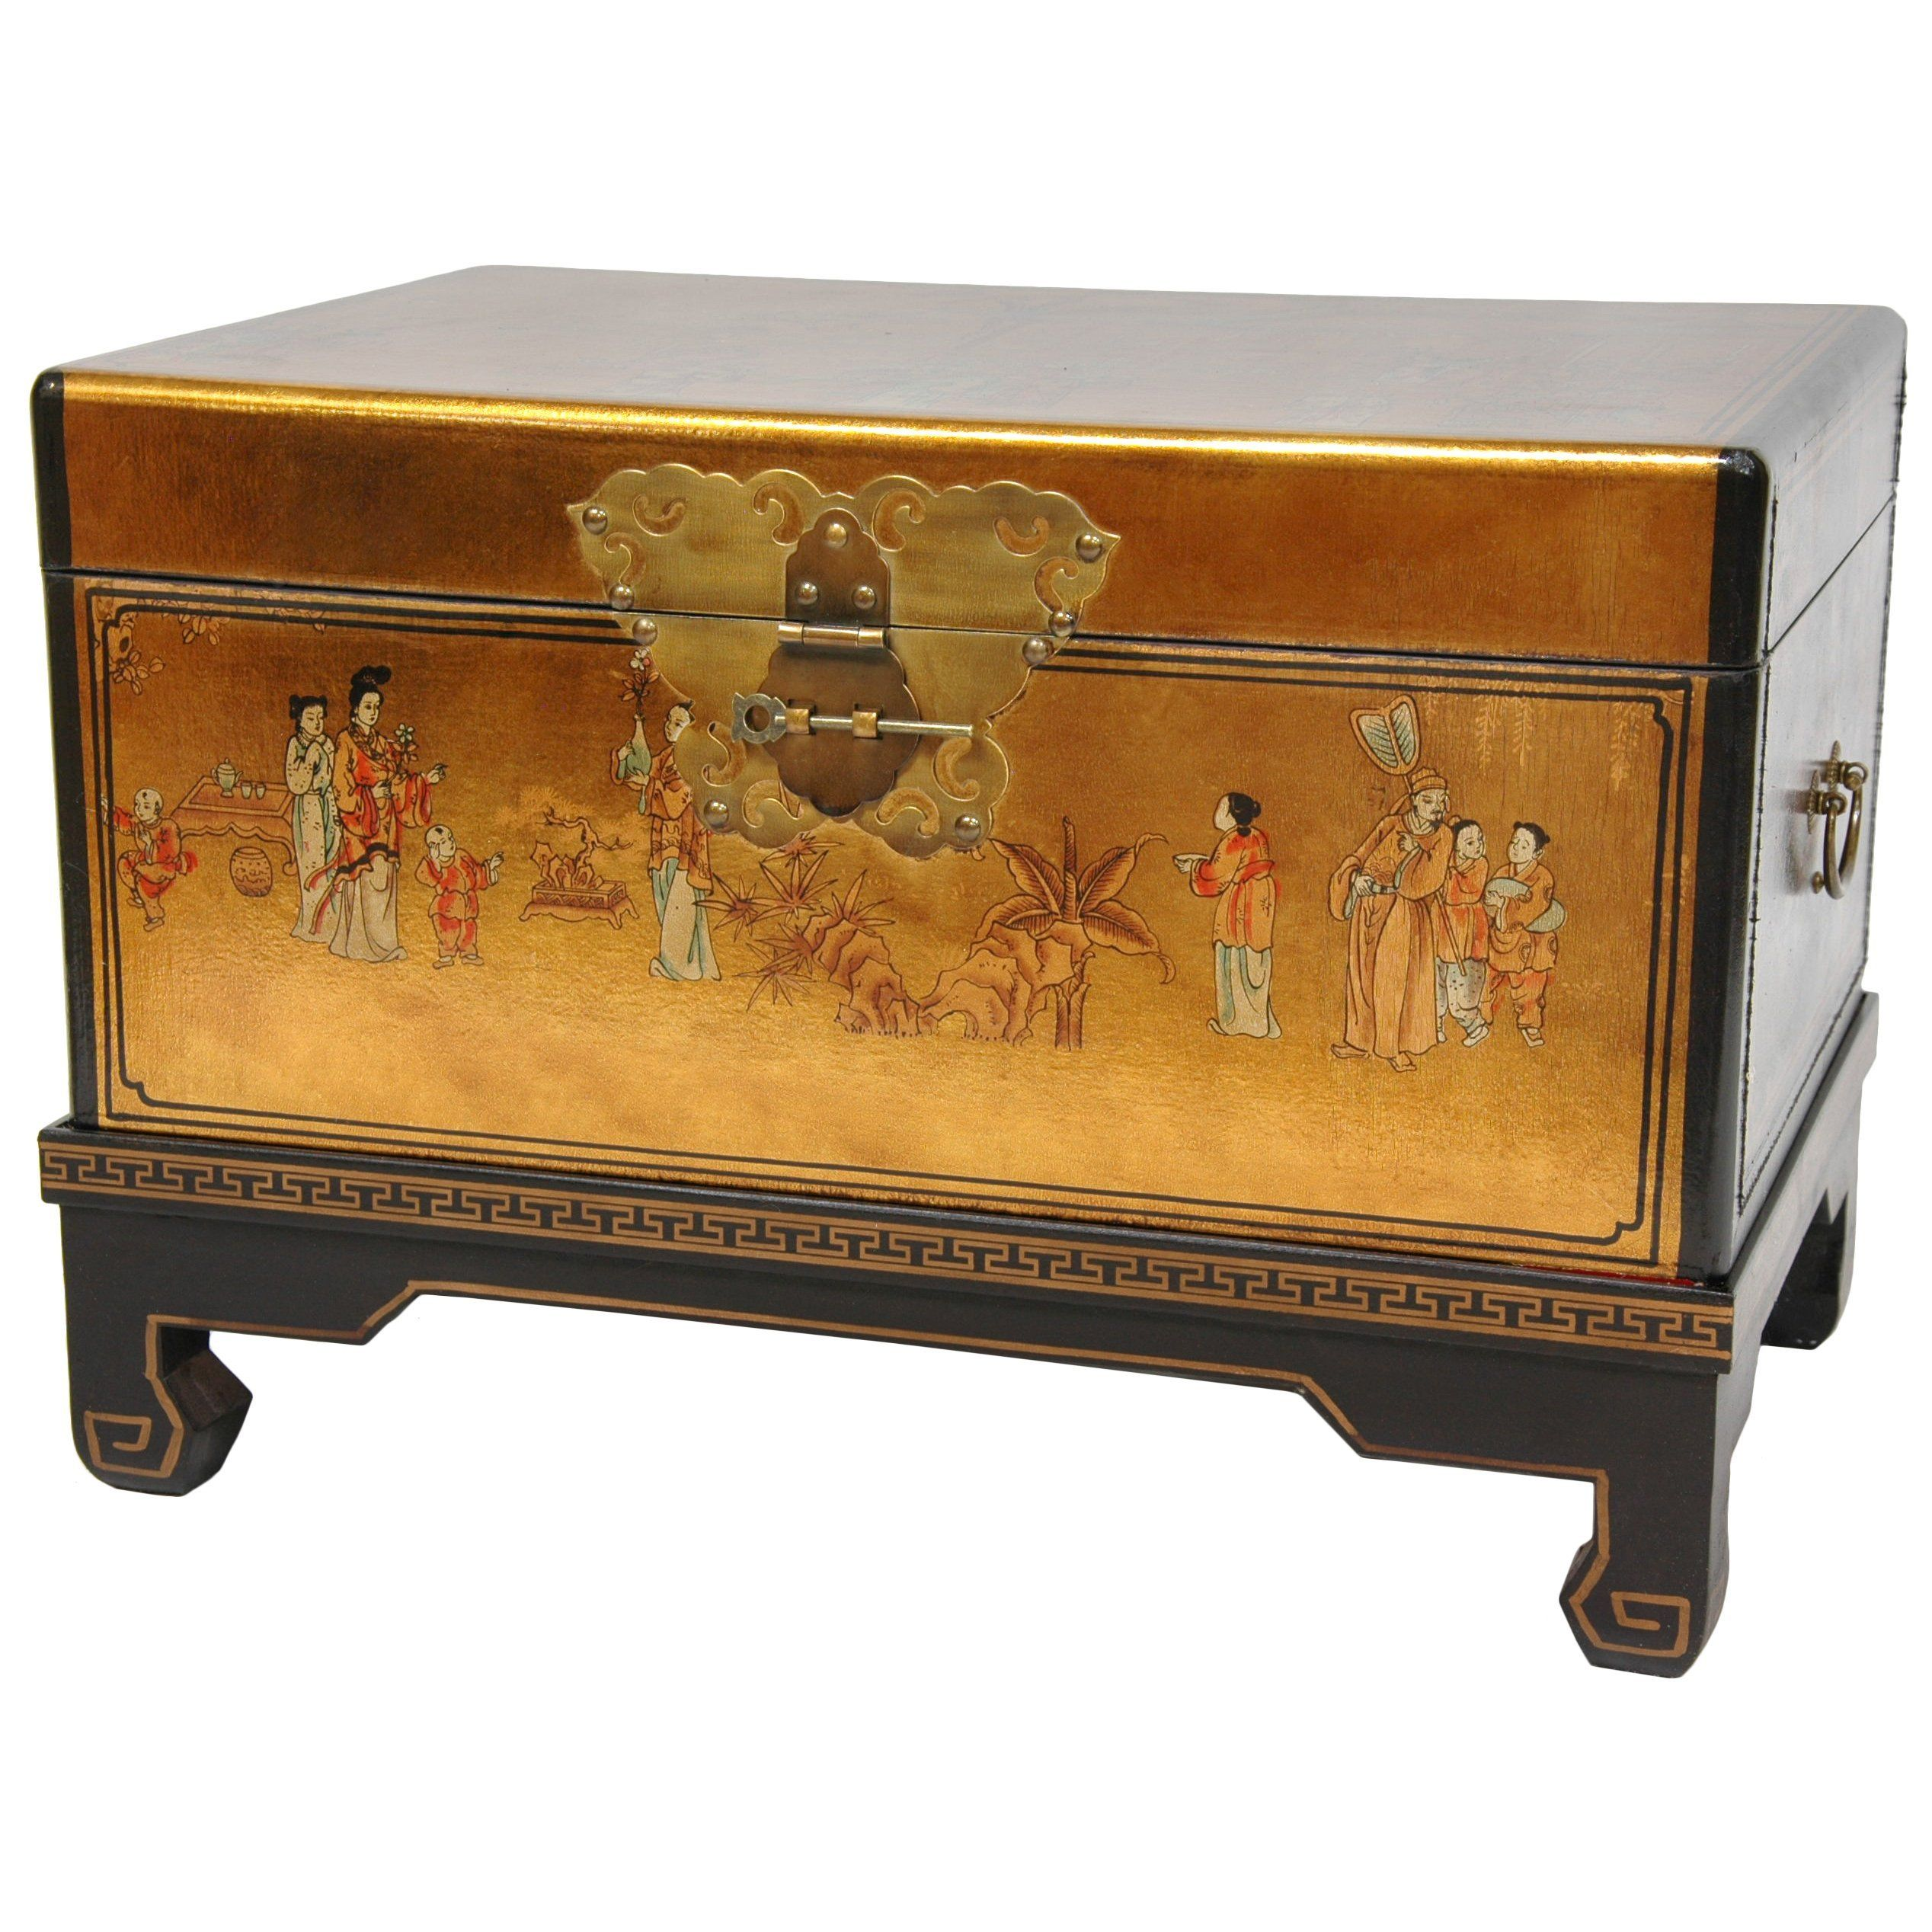 Superbe Amazon.com   Oriental Furniture Hand Painted Asian Decor 26 Inch Gold Leaf  Small Trunk Oriental Hope Chest   Storage Chests